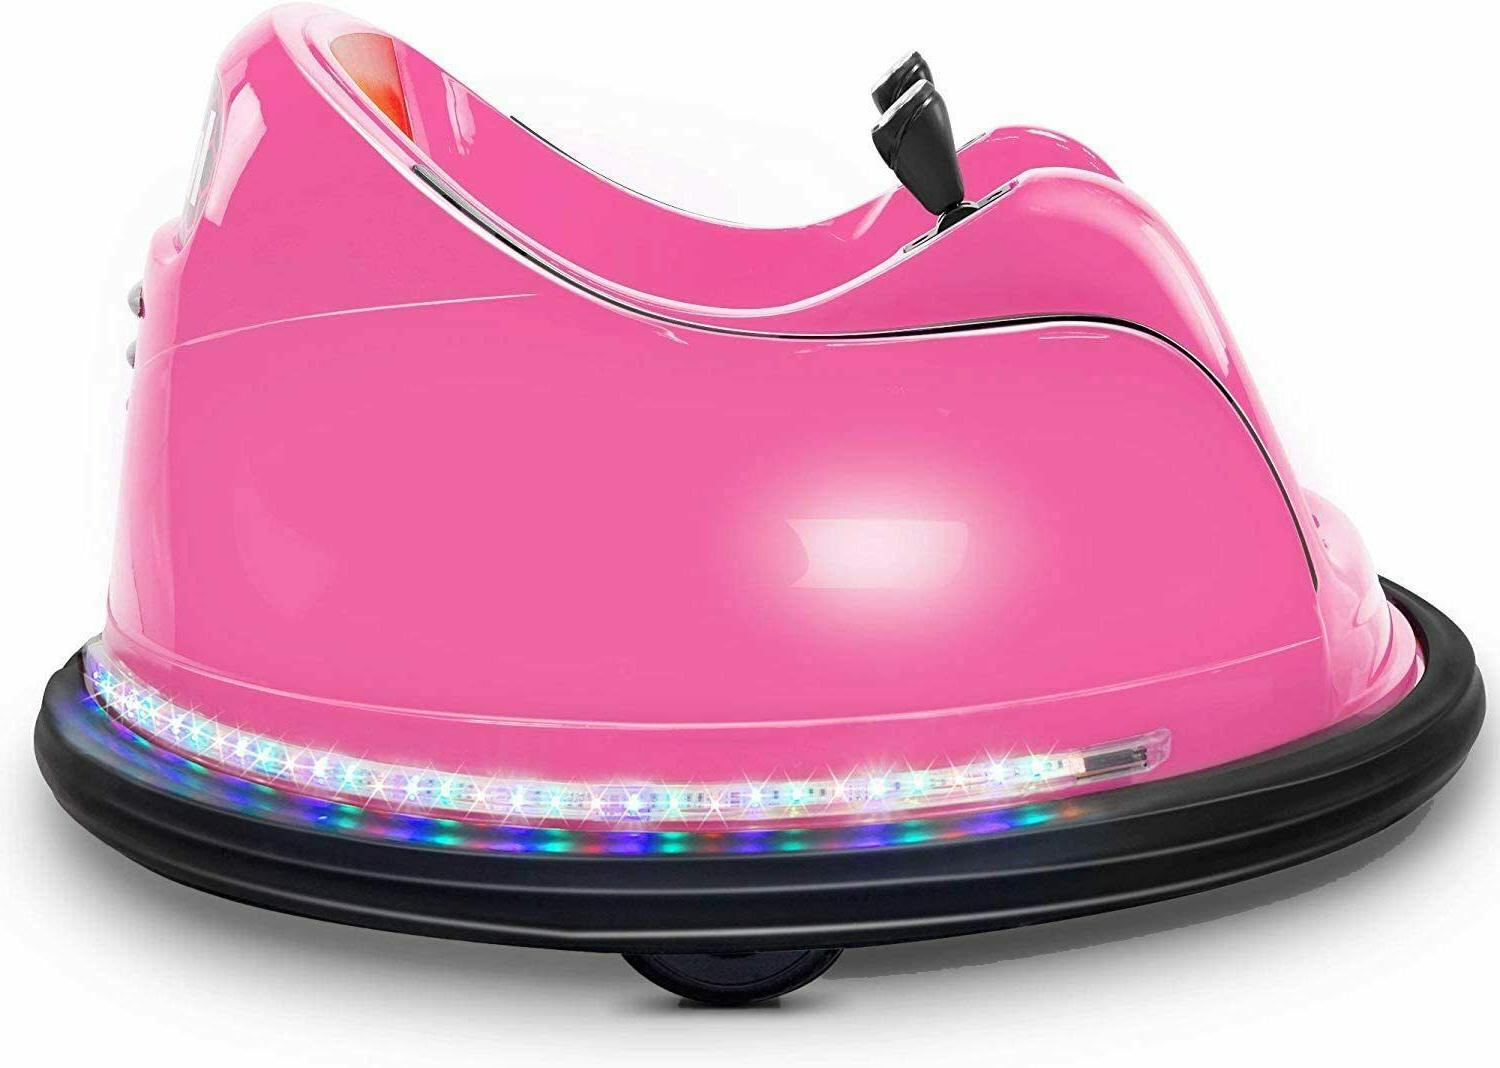 Kids ASTM-Certified Electric Pink